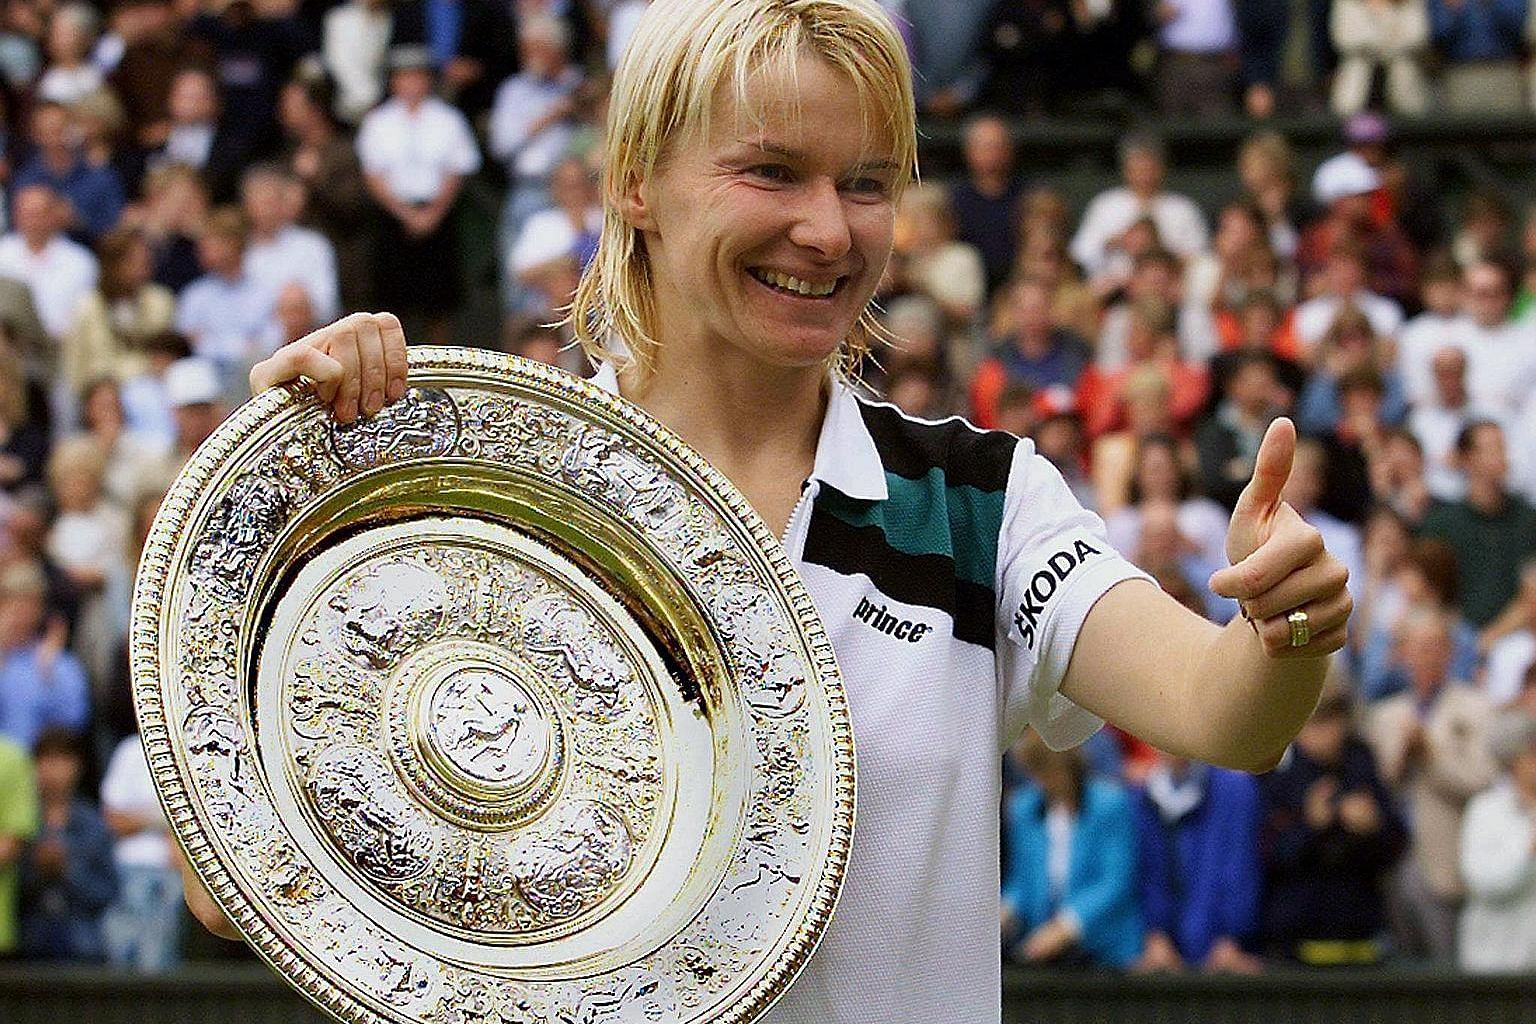 Jana Novotna shows her delight after winning the Wimbledon singles final against Nathalie Tauziat in 1998. Her dramatic loss to Steffi Graf in the 1993 final was followed by a loss to Martina Hingis in the 1997 final.